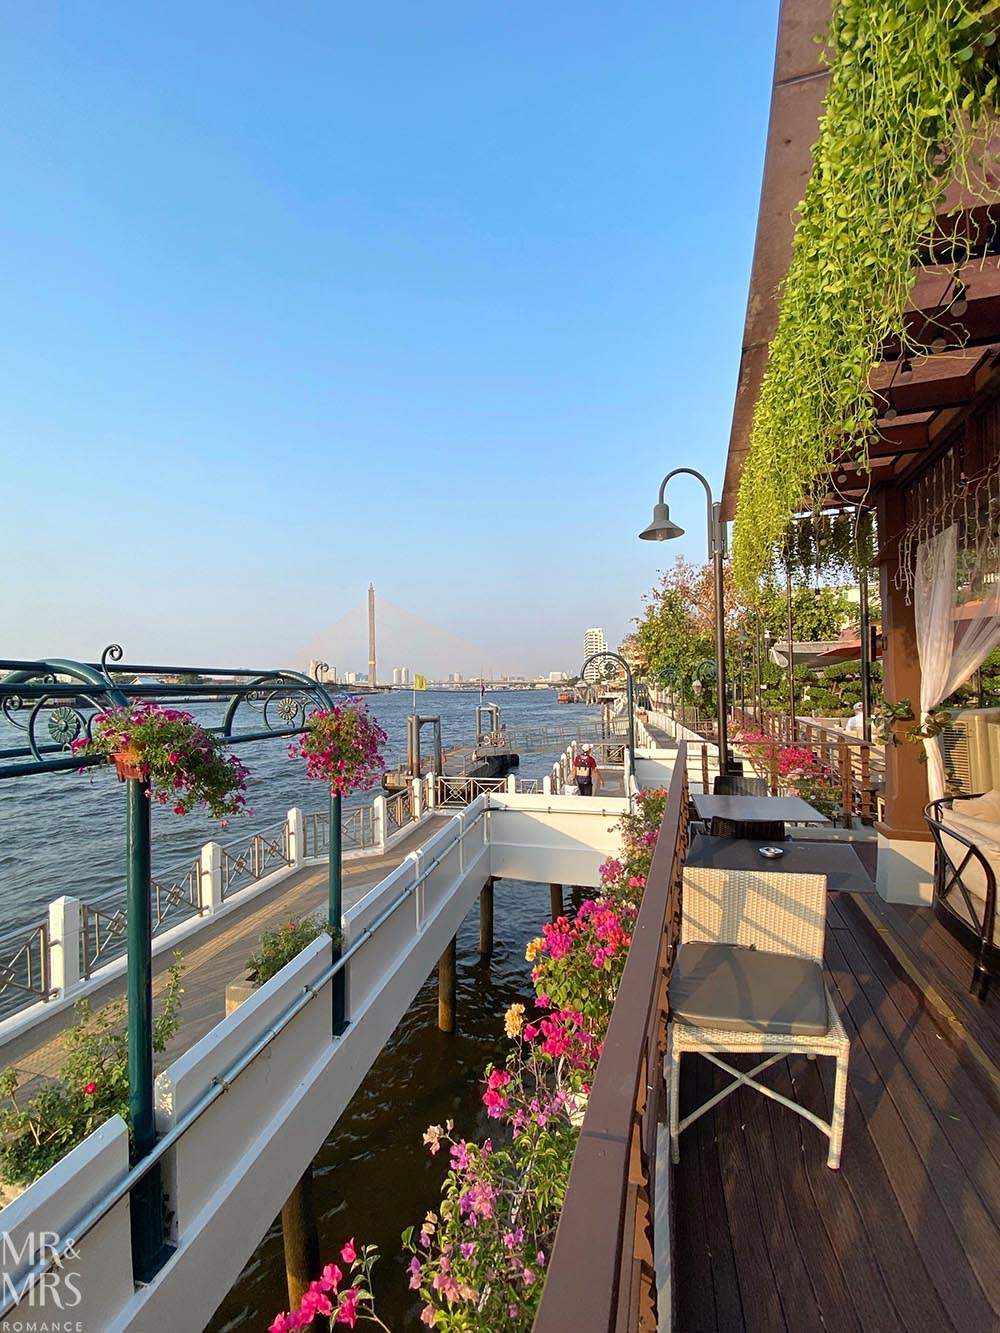 Where to stay in Bangkok Old Town - Riva Surya Hotel review - river view and private jetty